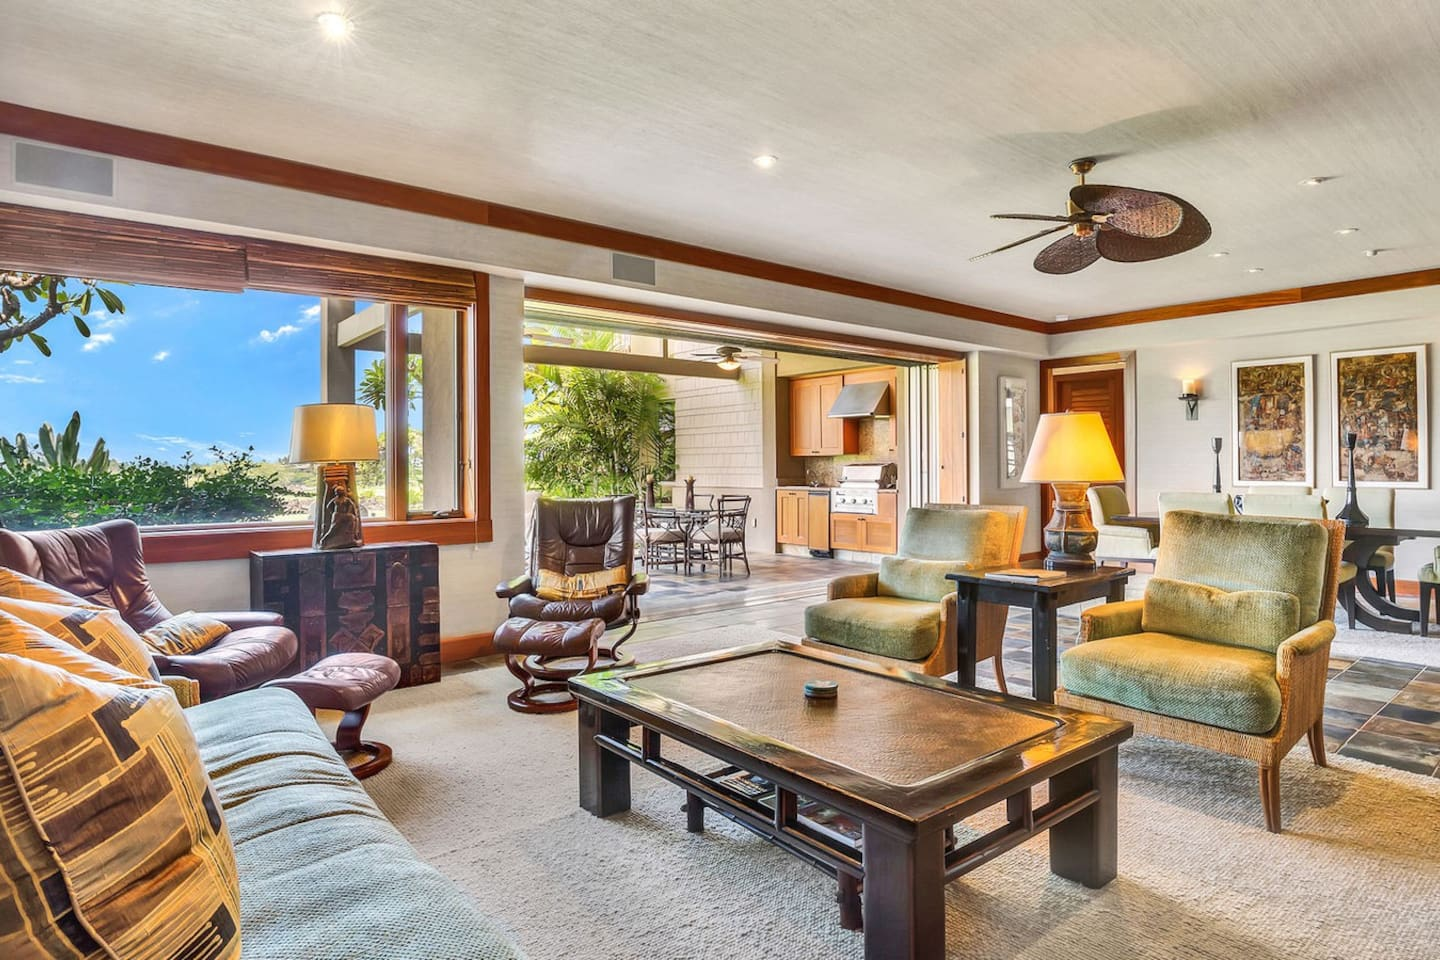 Spacious living area with view to dining area and lanai.